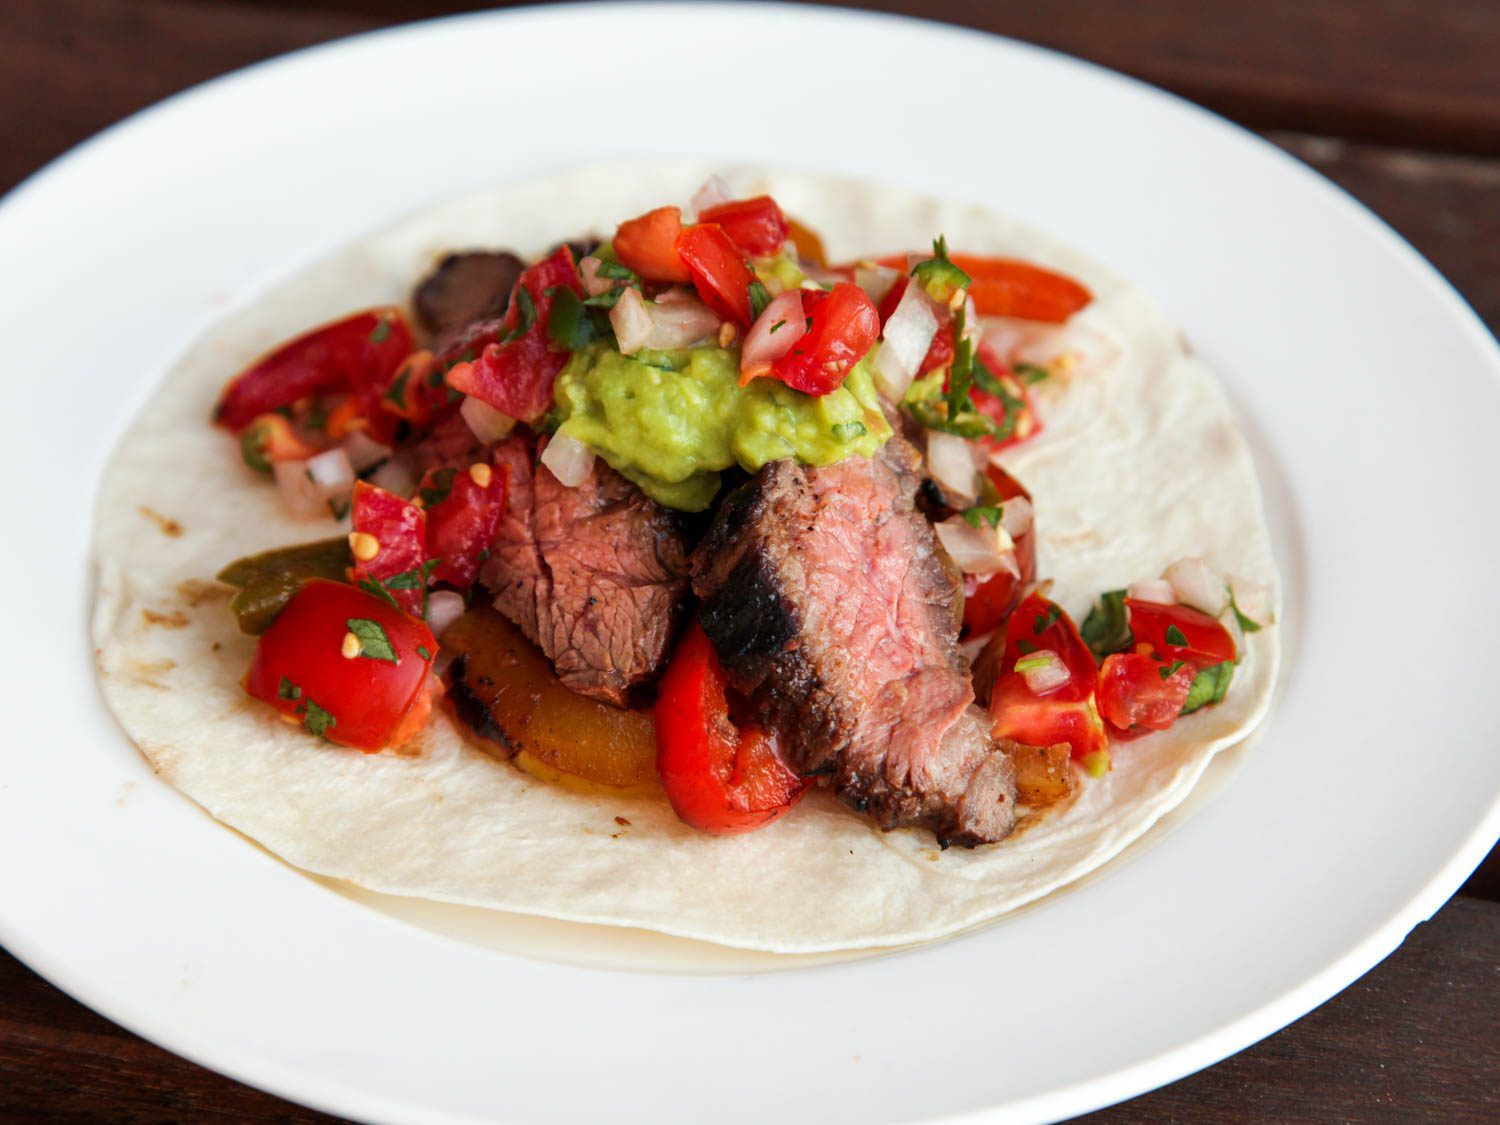 A white plate holding a flour tortilla topped with steak fajitas, grilled peppers and onions, guacamole, and pico de gallo.